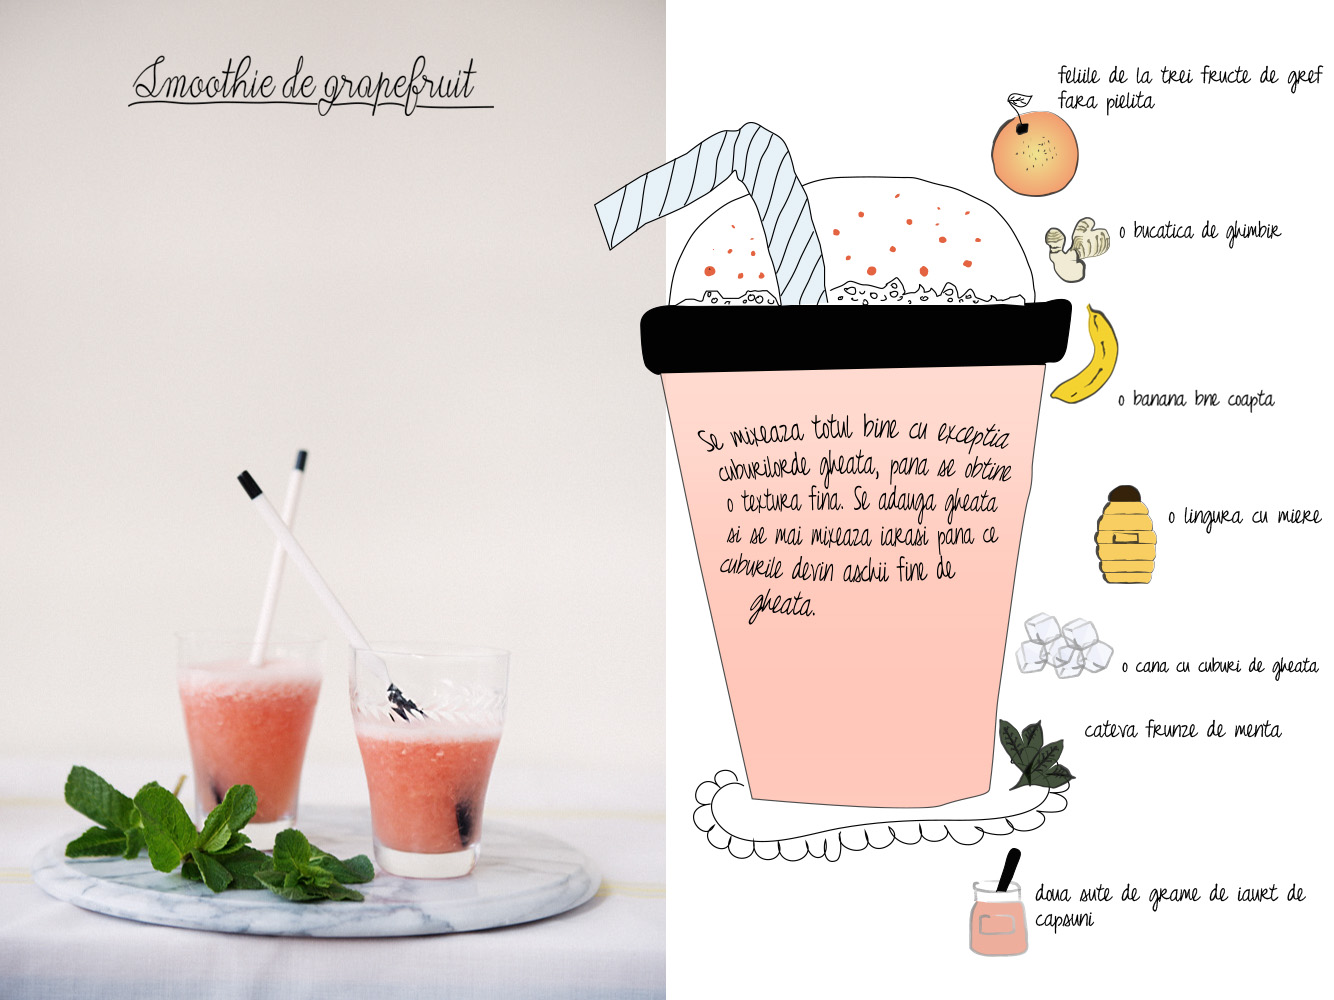 smoothie grapefruit-06